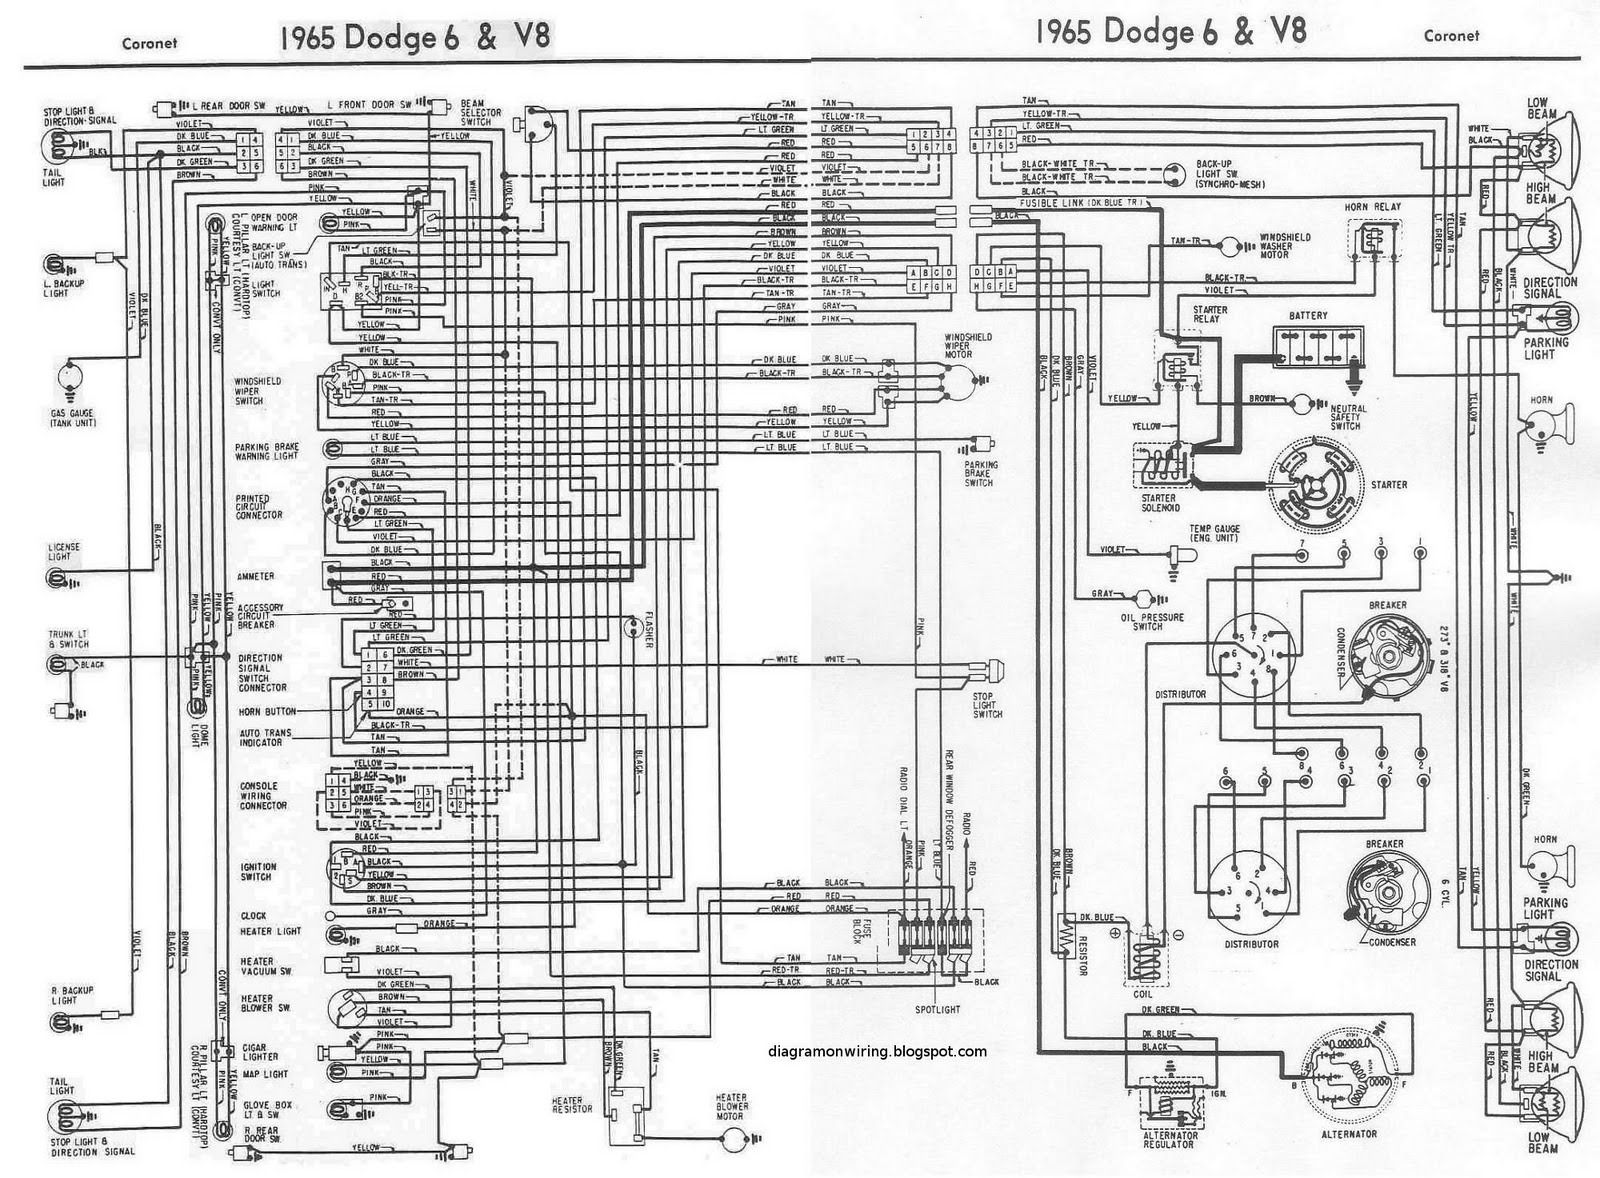 small resolution of 1967 dodge alternator wiring wiring diagram repair guides1966 plymouth alternator wiring electrical wiring diagram1967 dodge alternator